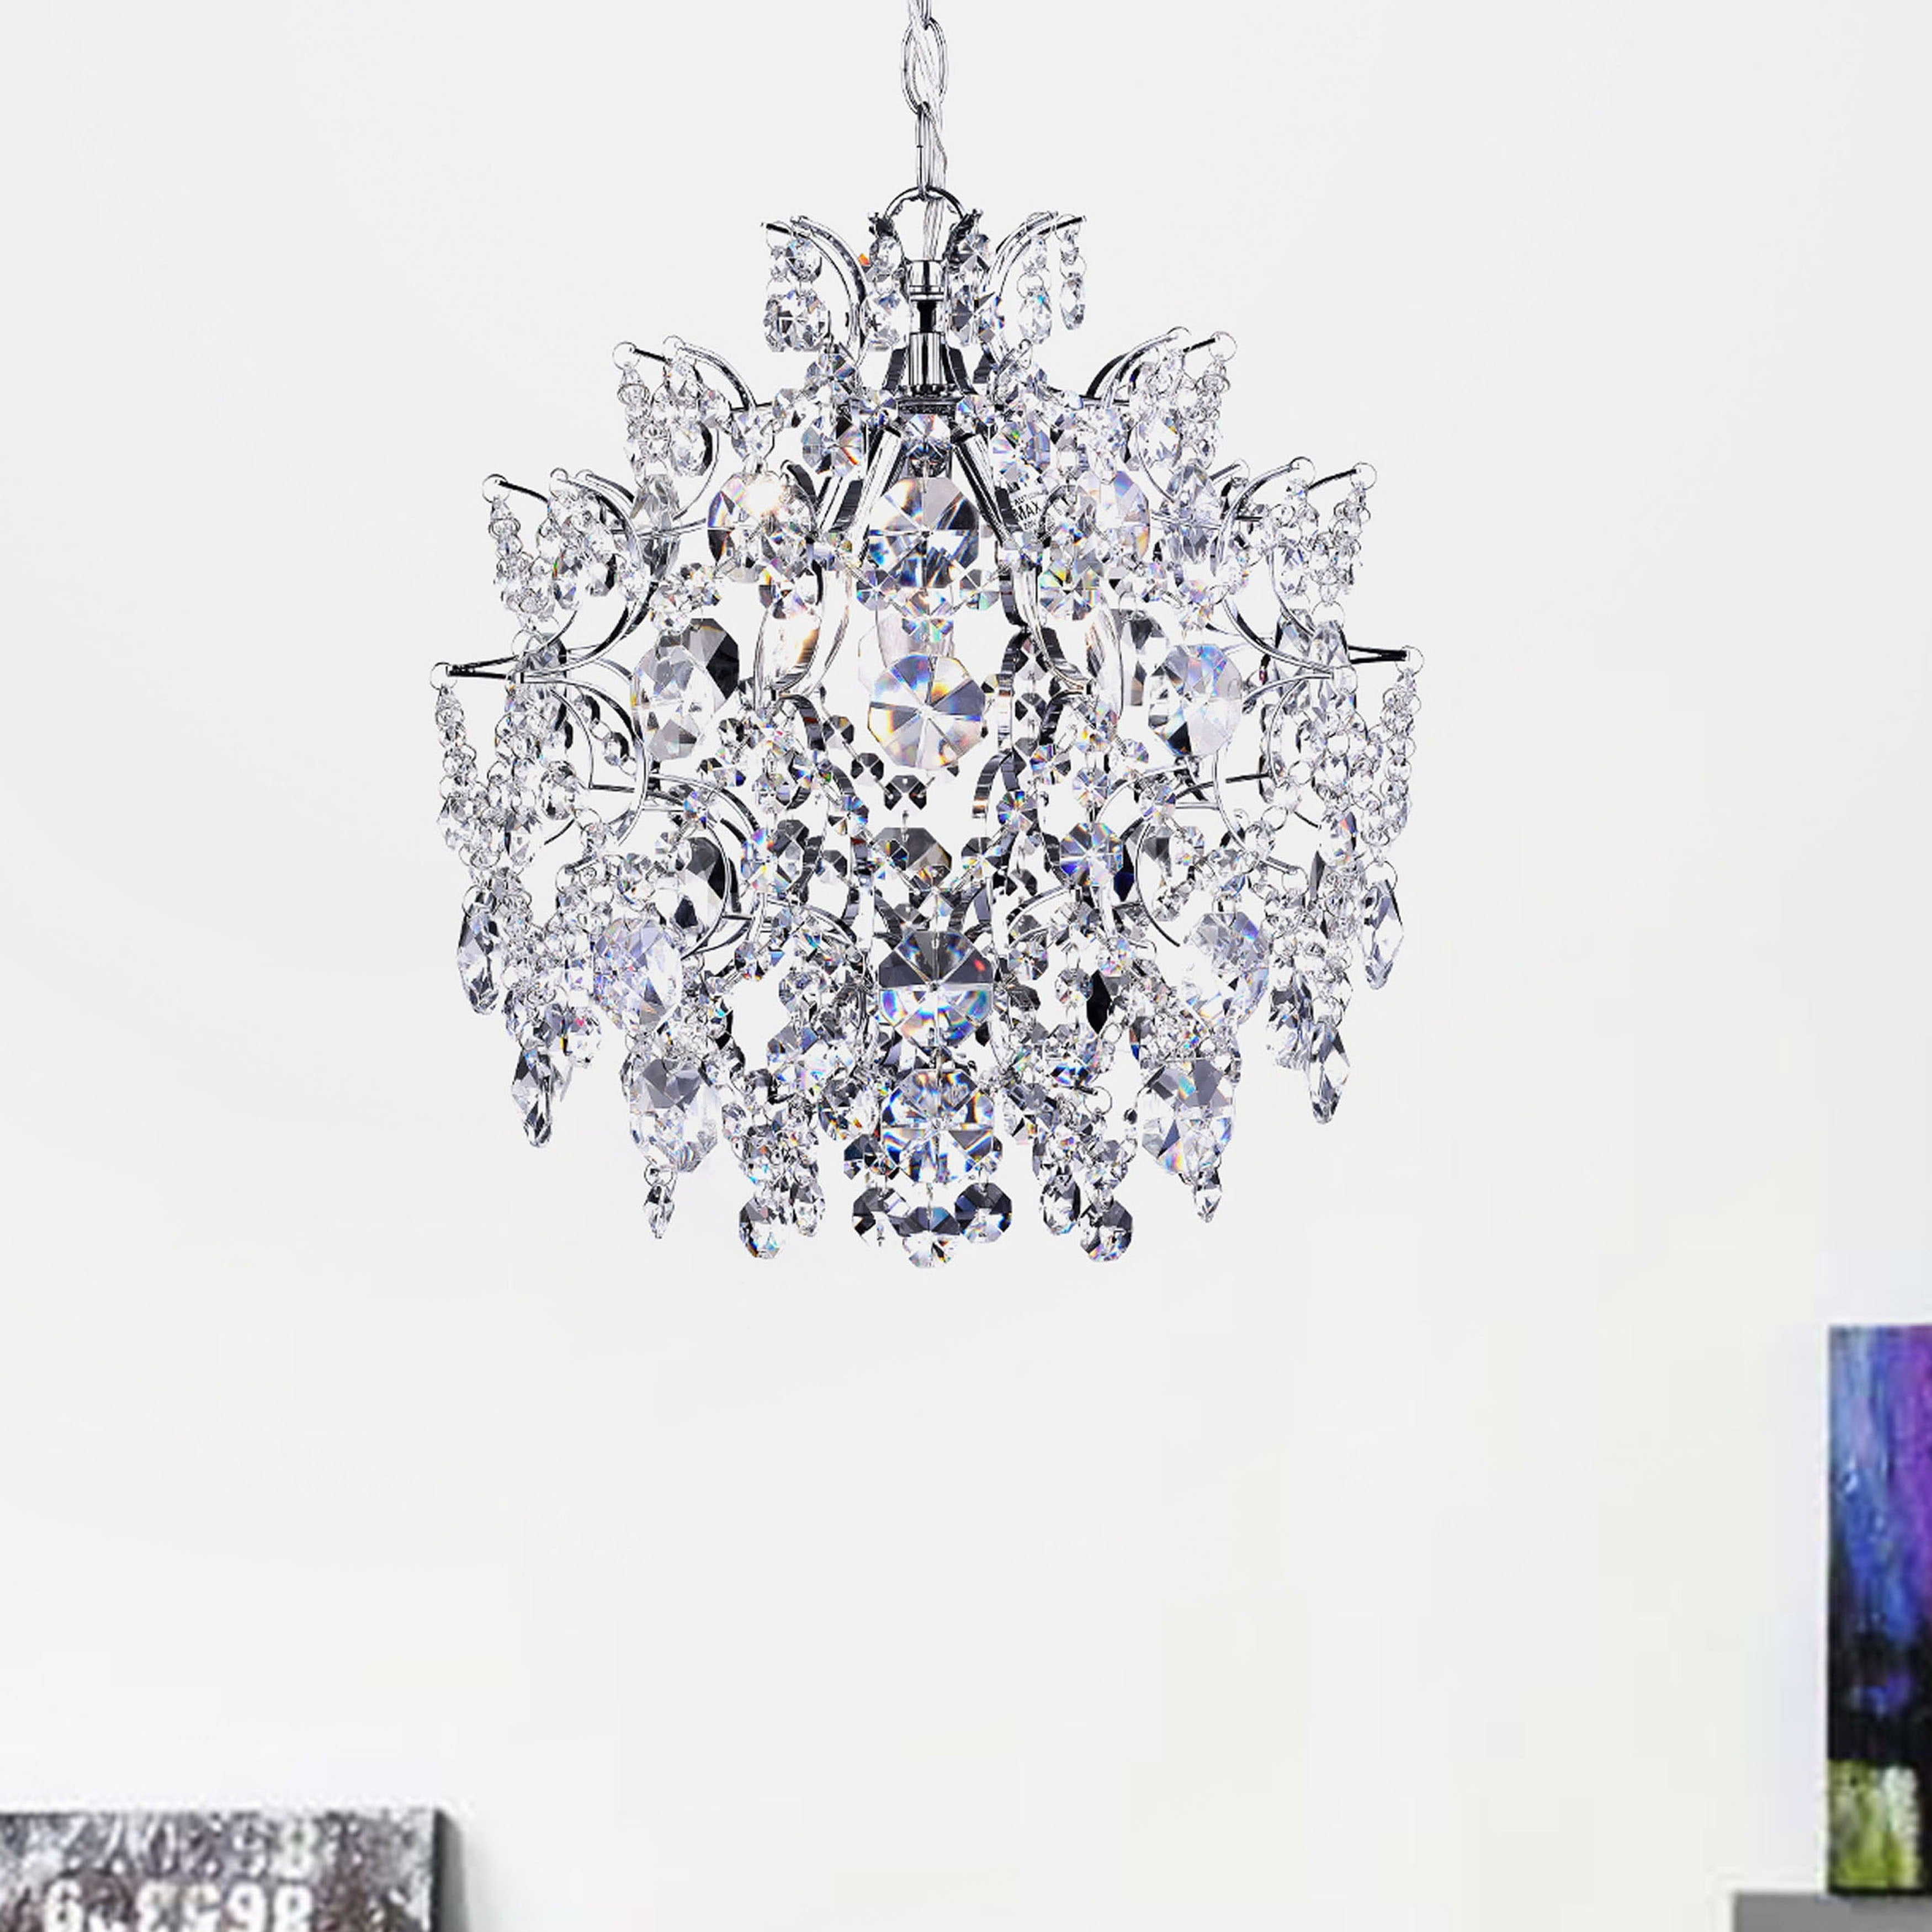 Elegant indoor 3 light chromecrystal chandelier free shipping elegant indoor 3 light chromecrystal chandelier free shipping today overstock 13019688 arubaitofo Choice Image